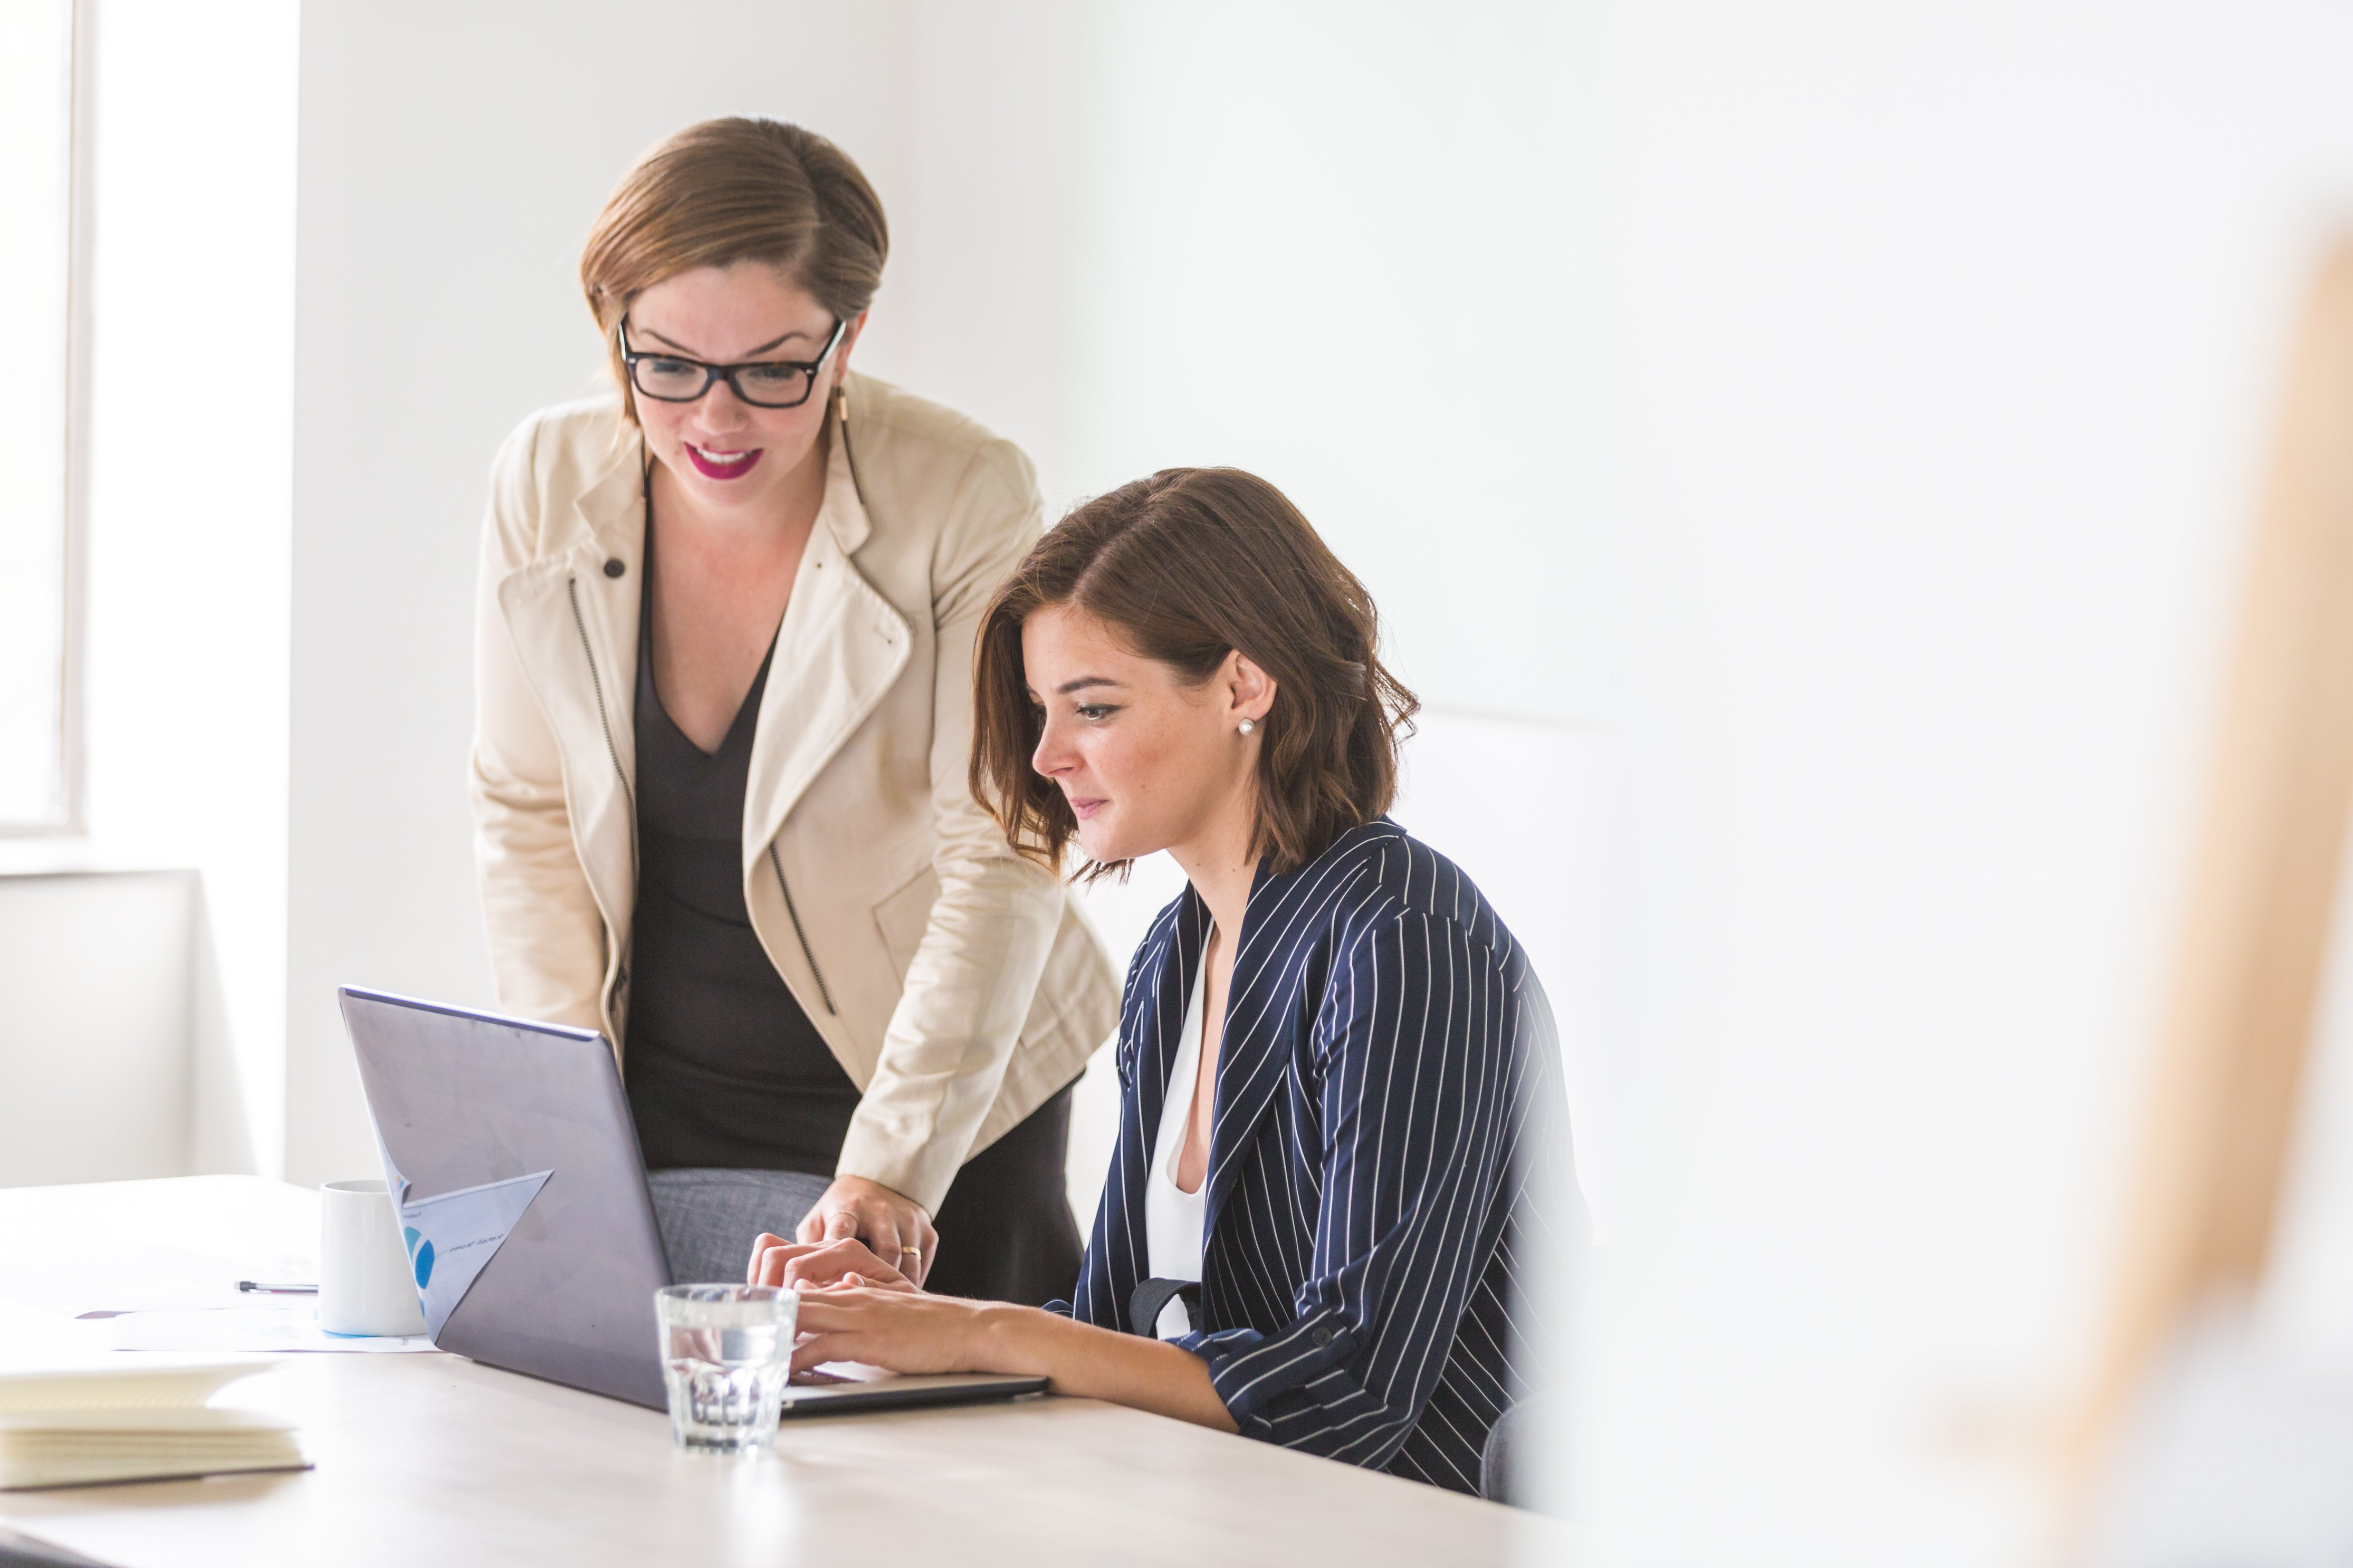 Two women collaborating over an open laptop computer